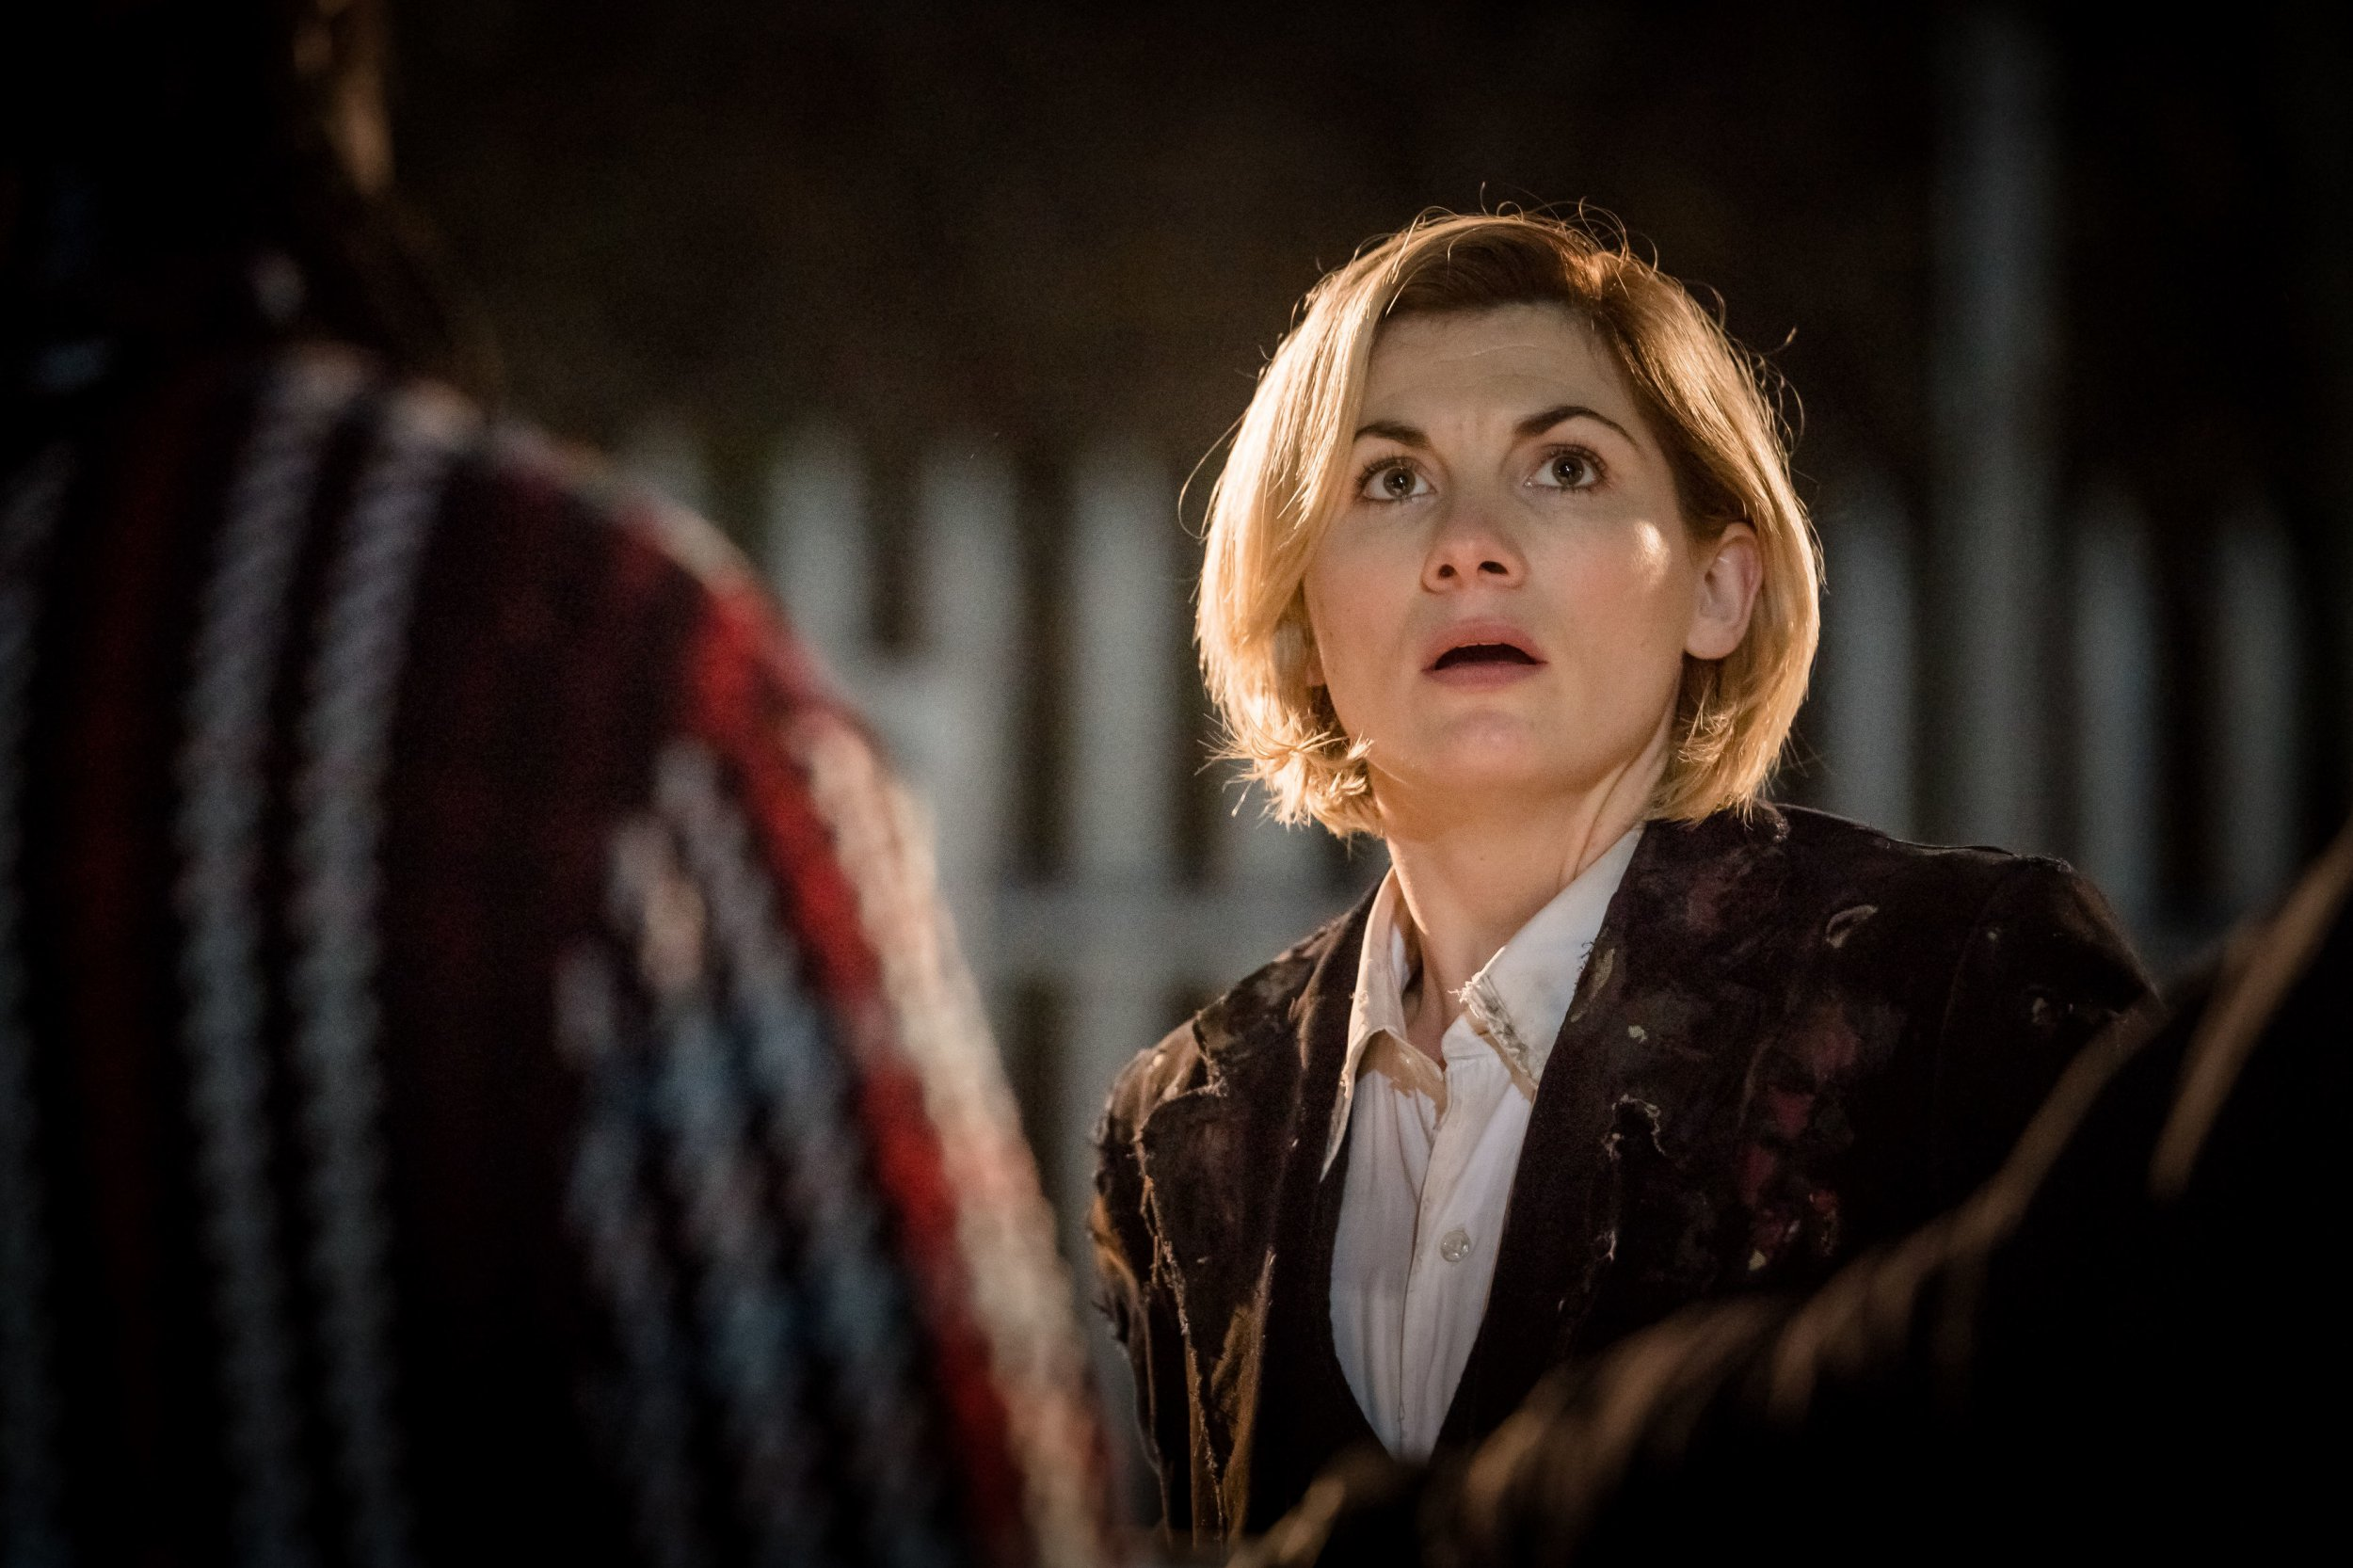 For use in UK, Ireland or Benelux countries only Undated BBC handout photo of Jodie Whittaker as The Doctor in the new series of Doctor Who. Television history will be made when Doctor Who's lead character is taken over by Whittaker, the first woman to play the role since it began 55 years ago. PRESS ASSOCIATION Photo. Issue date: Saturday October 6, 2018. The actress plays the 13th Doctor in the sci-fi series, picking up from where her predecessor Peter Capaldi left off. Doctor Who airs at 6.45pm on Sunday October 7 on BBC One. See PA story SHOWBIZ DoctorWho. Photo credit should read: Ben Blackall/BBC/PA Wire NOTE TO EDITORS: Not for use more than 21 days after issue. You may use this picture without charge only for the purpose of publicising or reporting on current BBC programming, personnel or other BBC output or activity within 21 days of issue. Any use after that time MUST be cleared through BBC Picture Publicity. Please credit the image to the BBC and any named photographer or independent programme maker, as described in the caption.